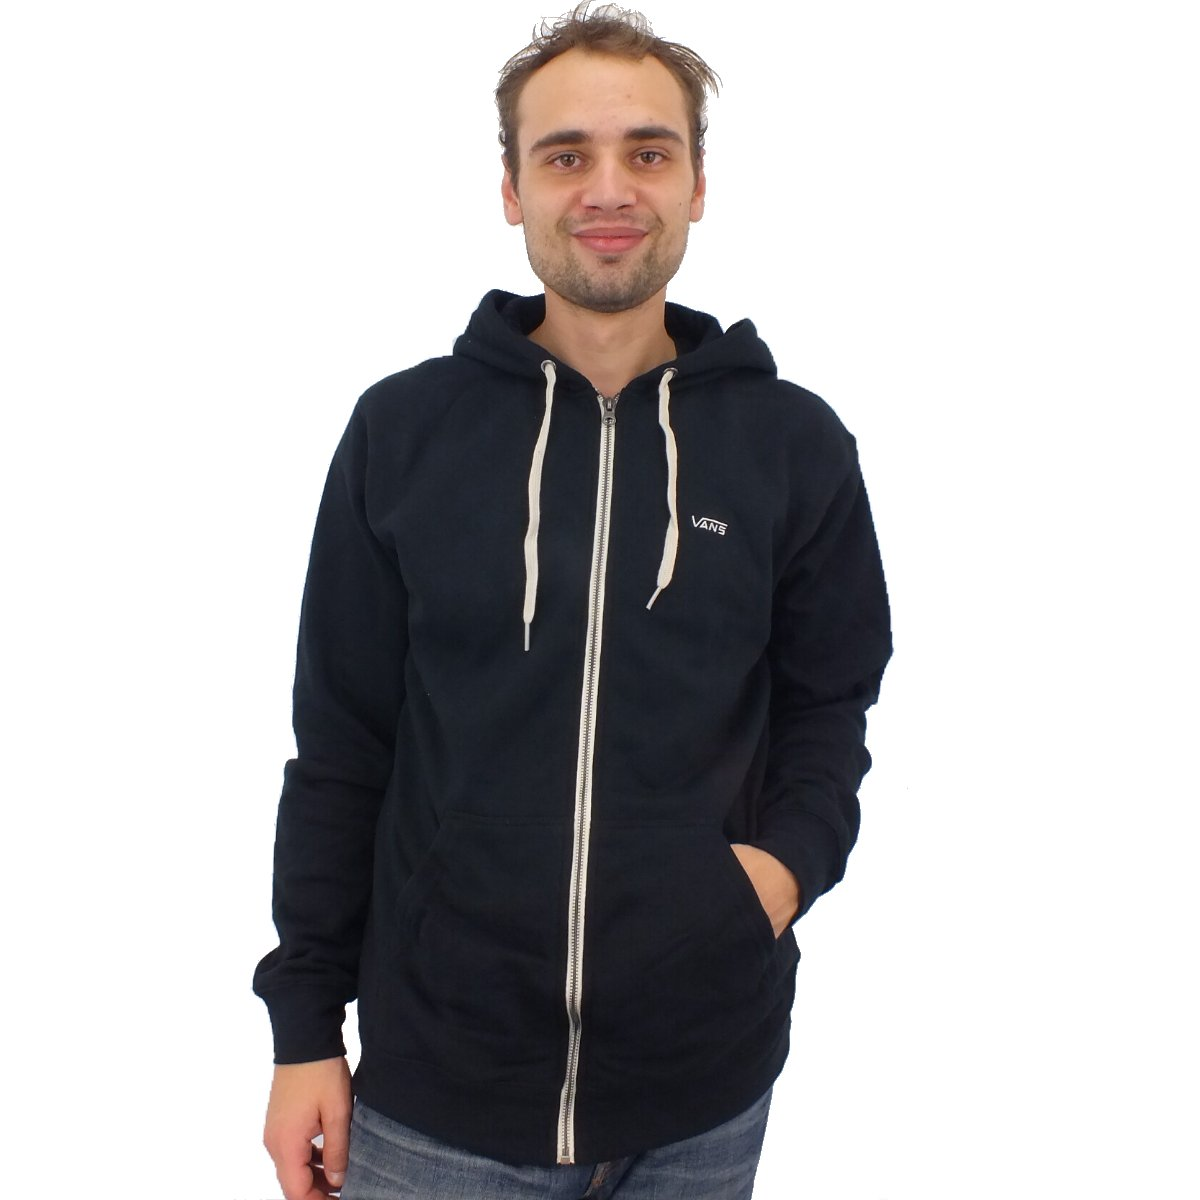 vans core basic zip hoodie herren jacke kapuzenjacke sweatshirt diverse farben ebay. Black Bedroom Furniture Sets. Home Design Ideas